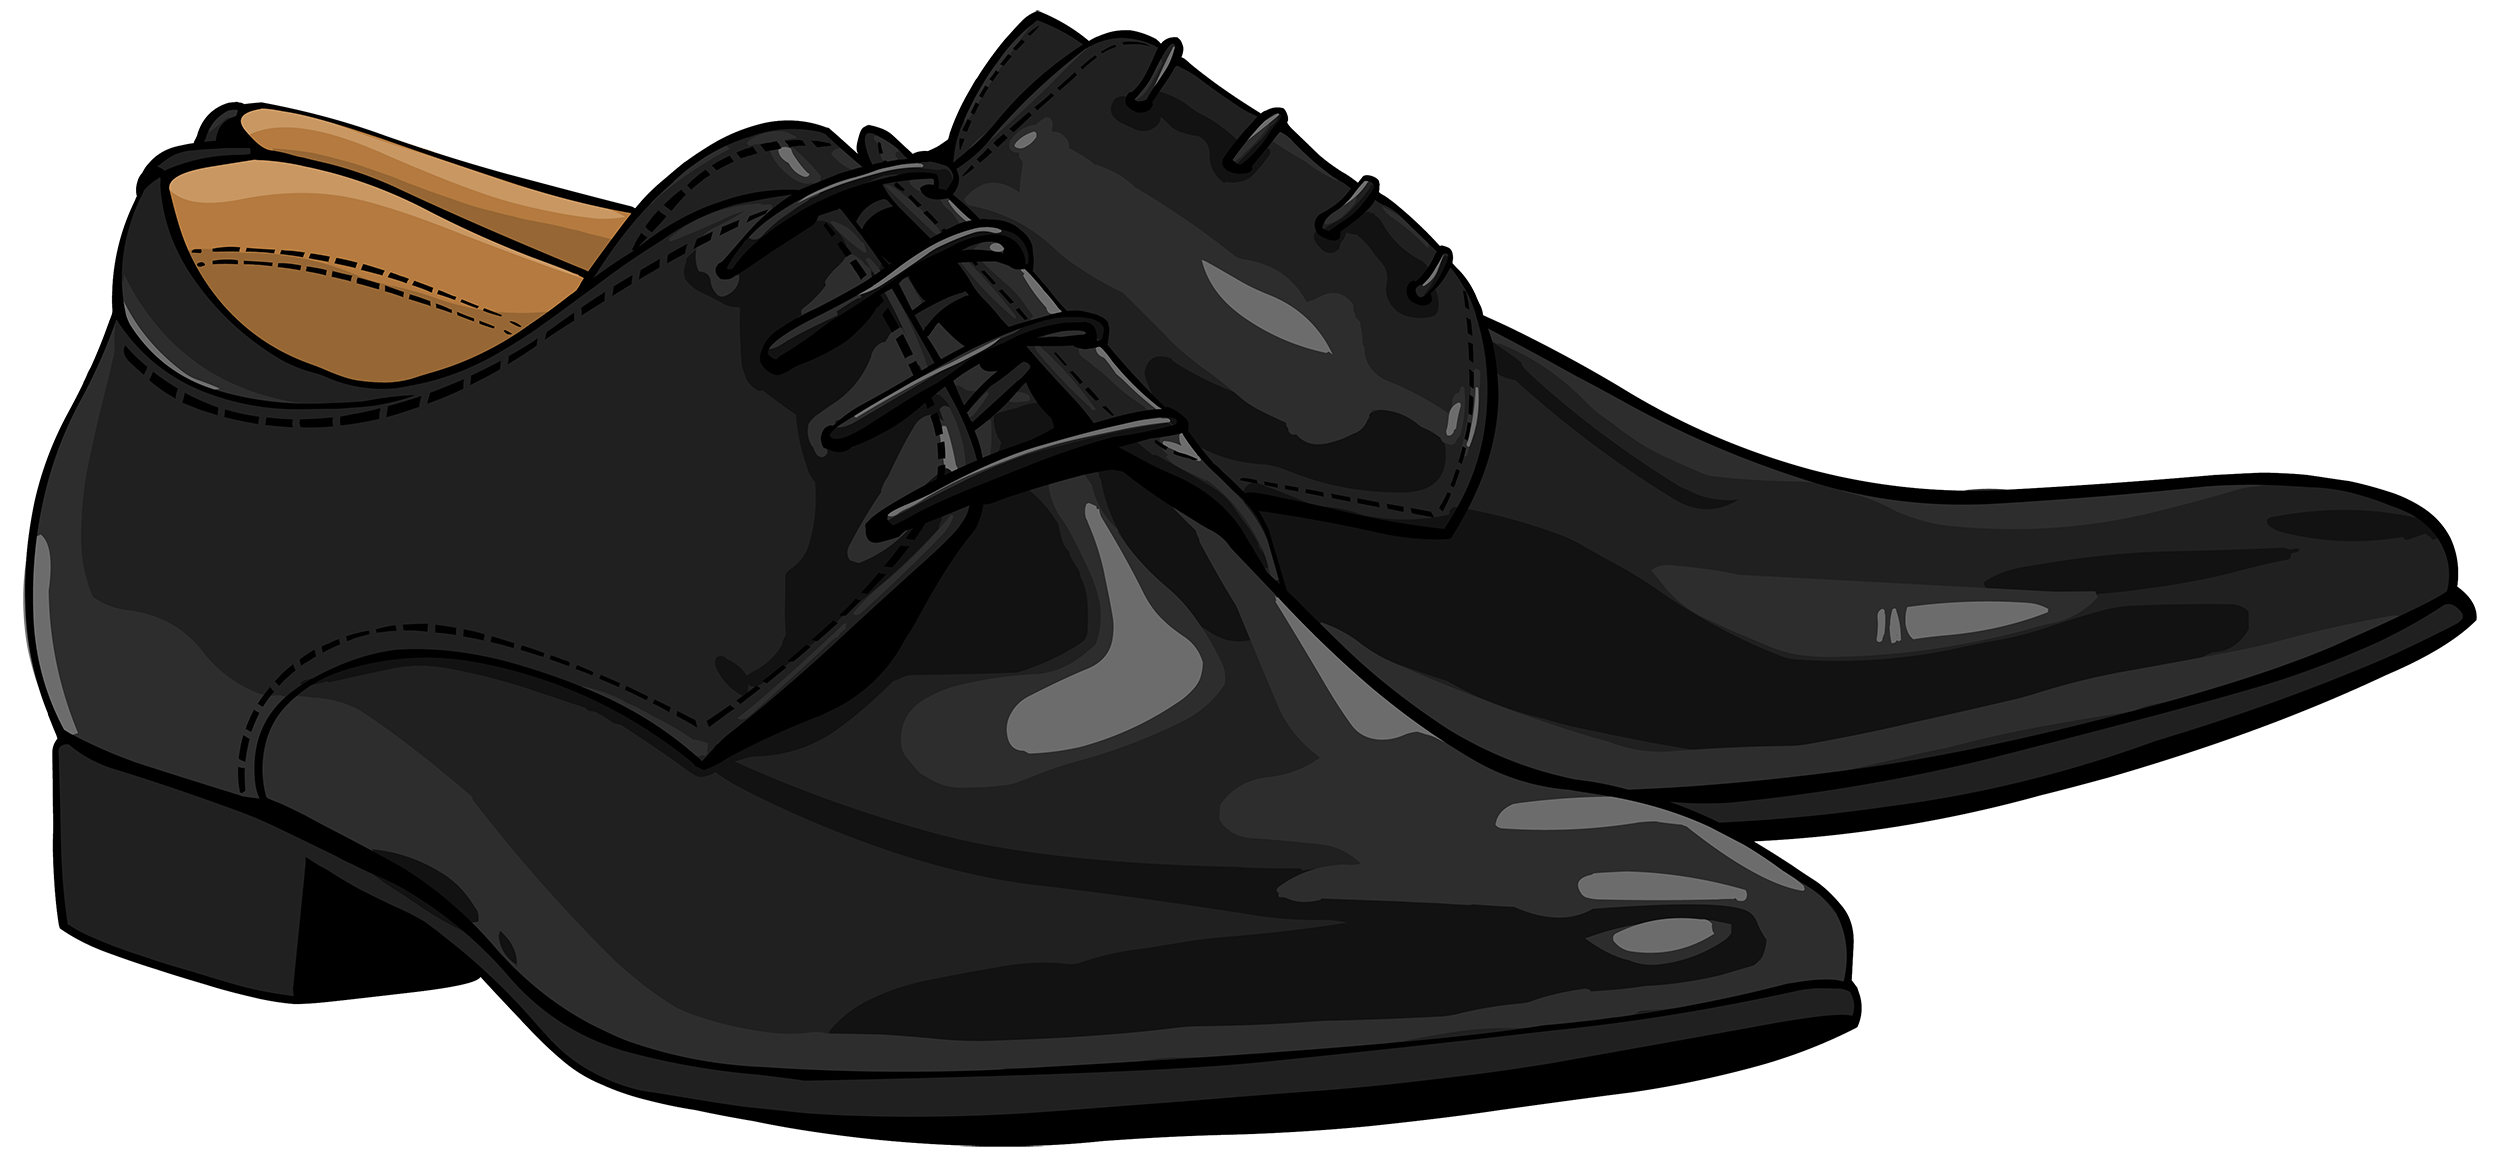 Shoe clipart dress shoe. Black men shoes png